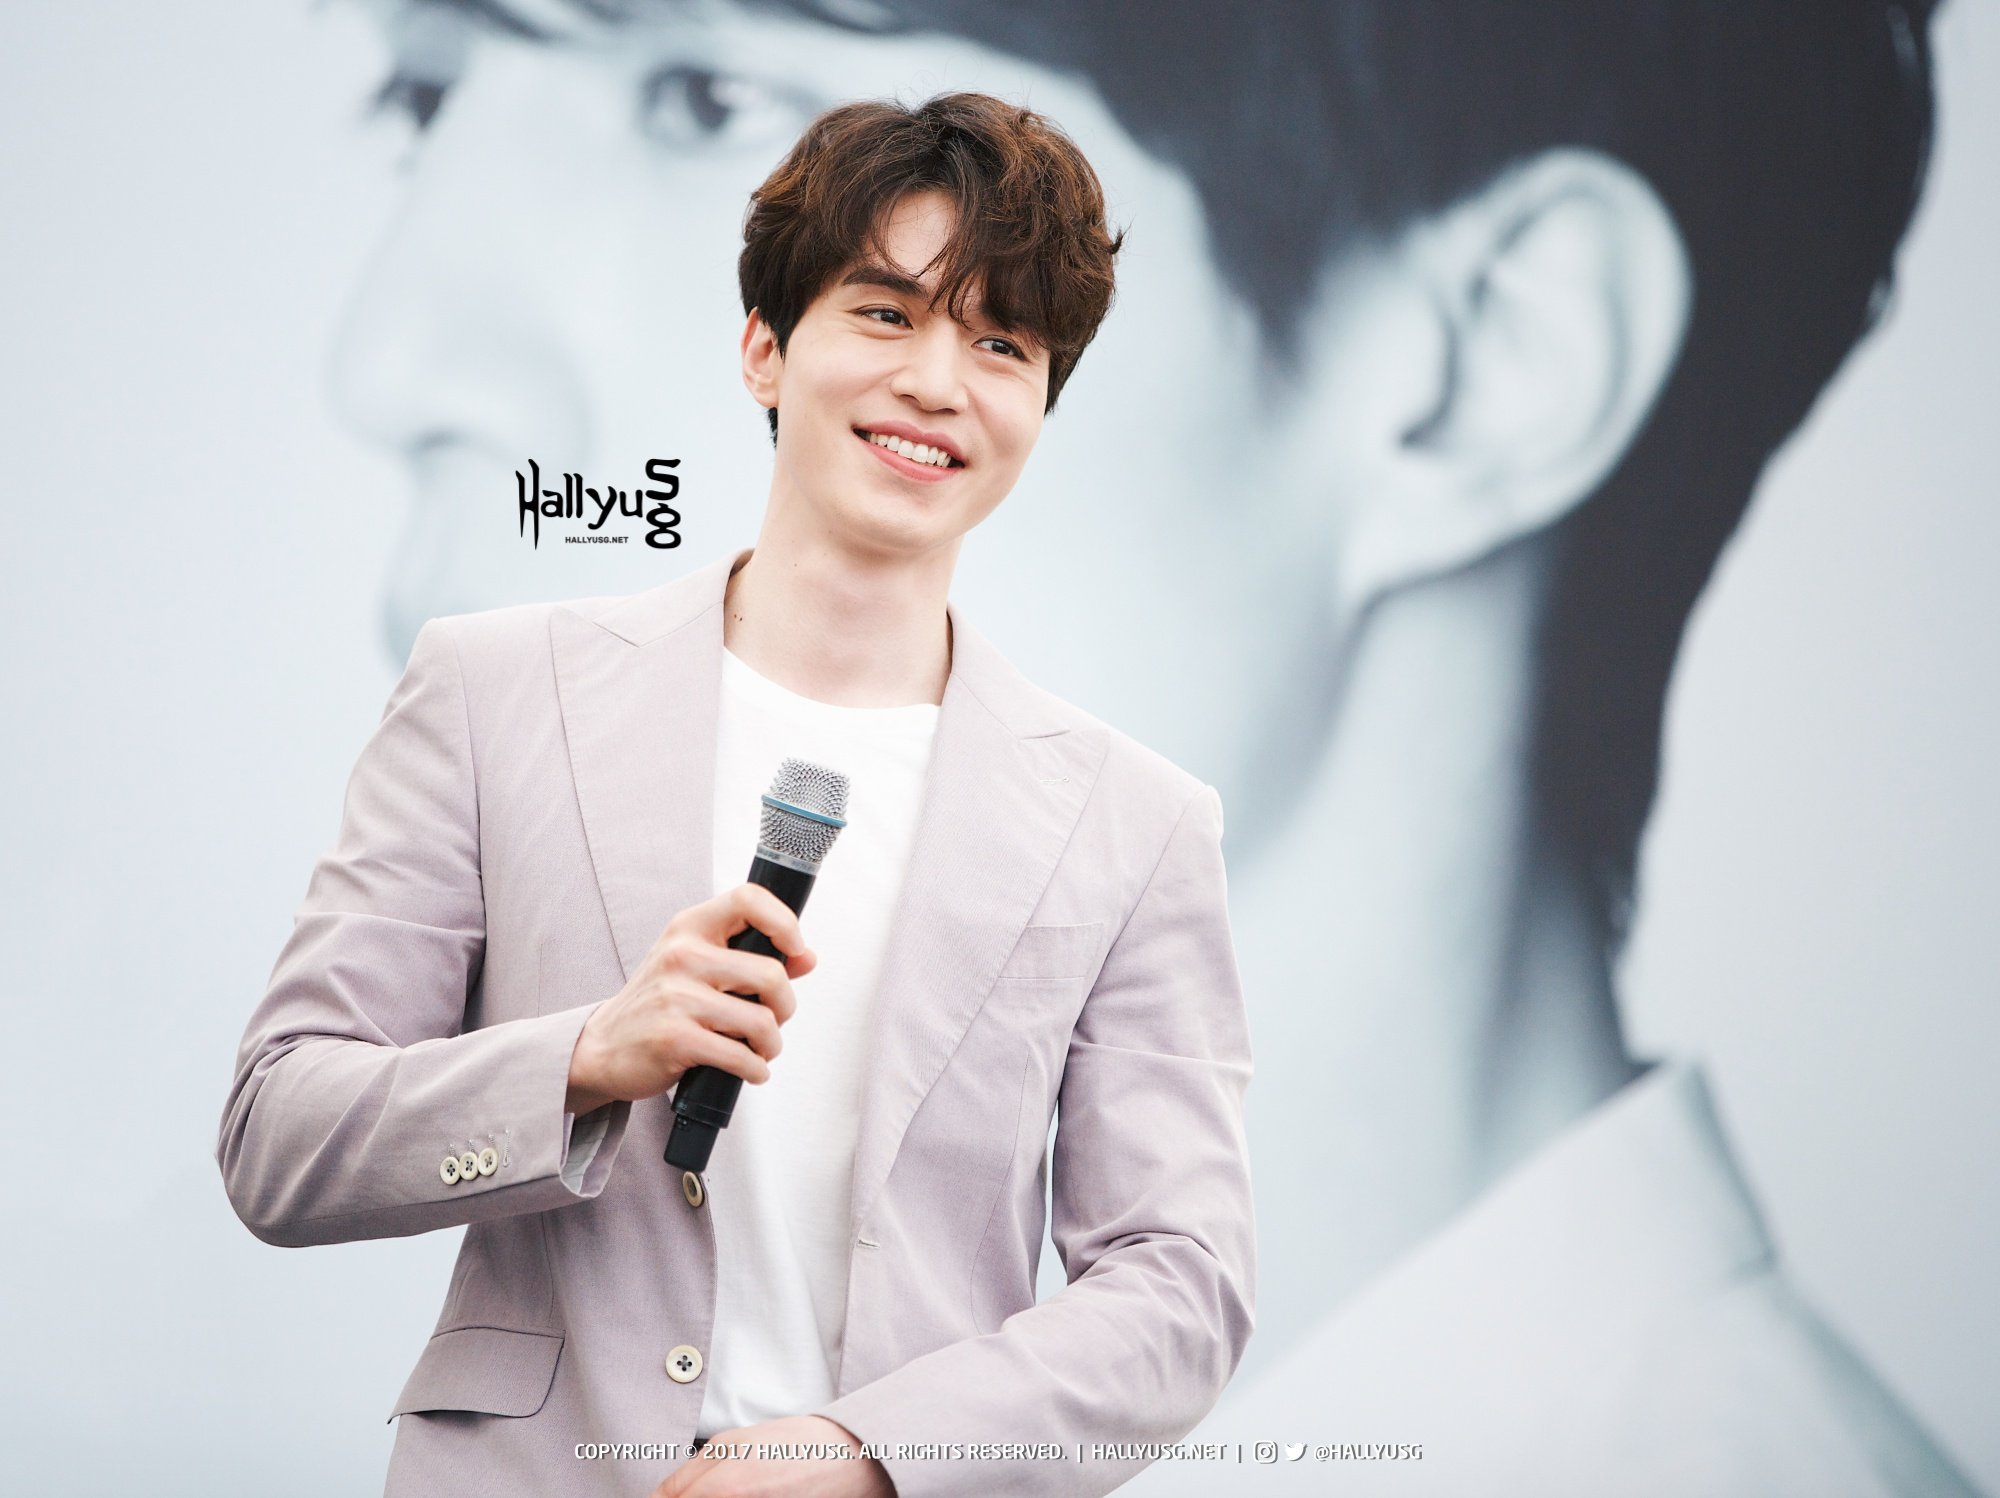 COVER Grim Reaper Lee Dong Wook Wants A Bad Guy Role